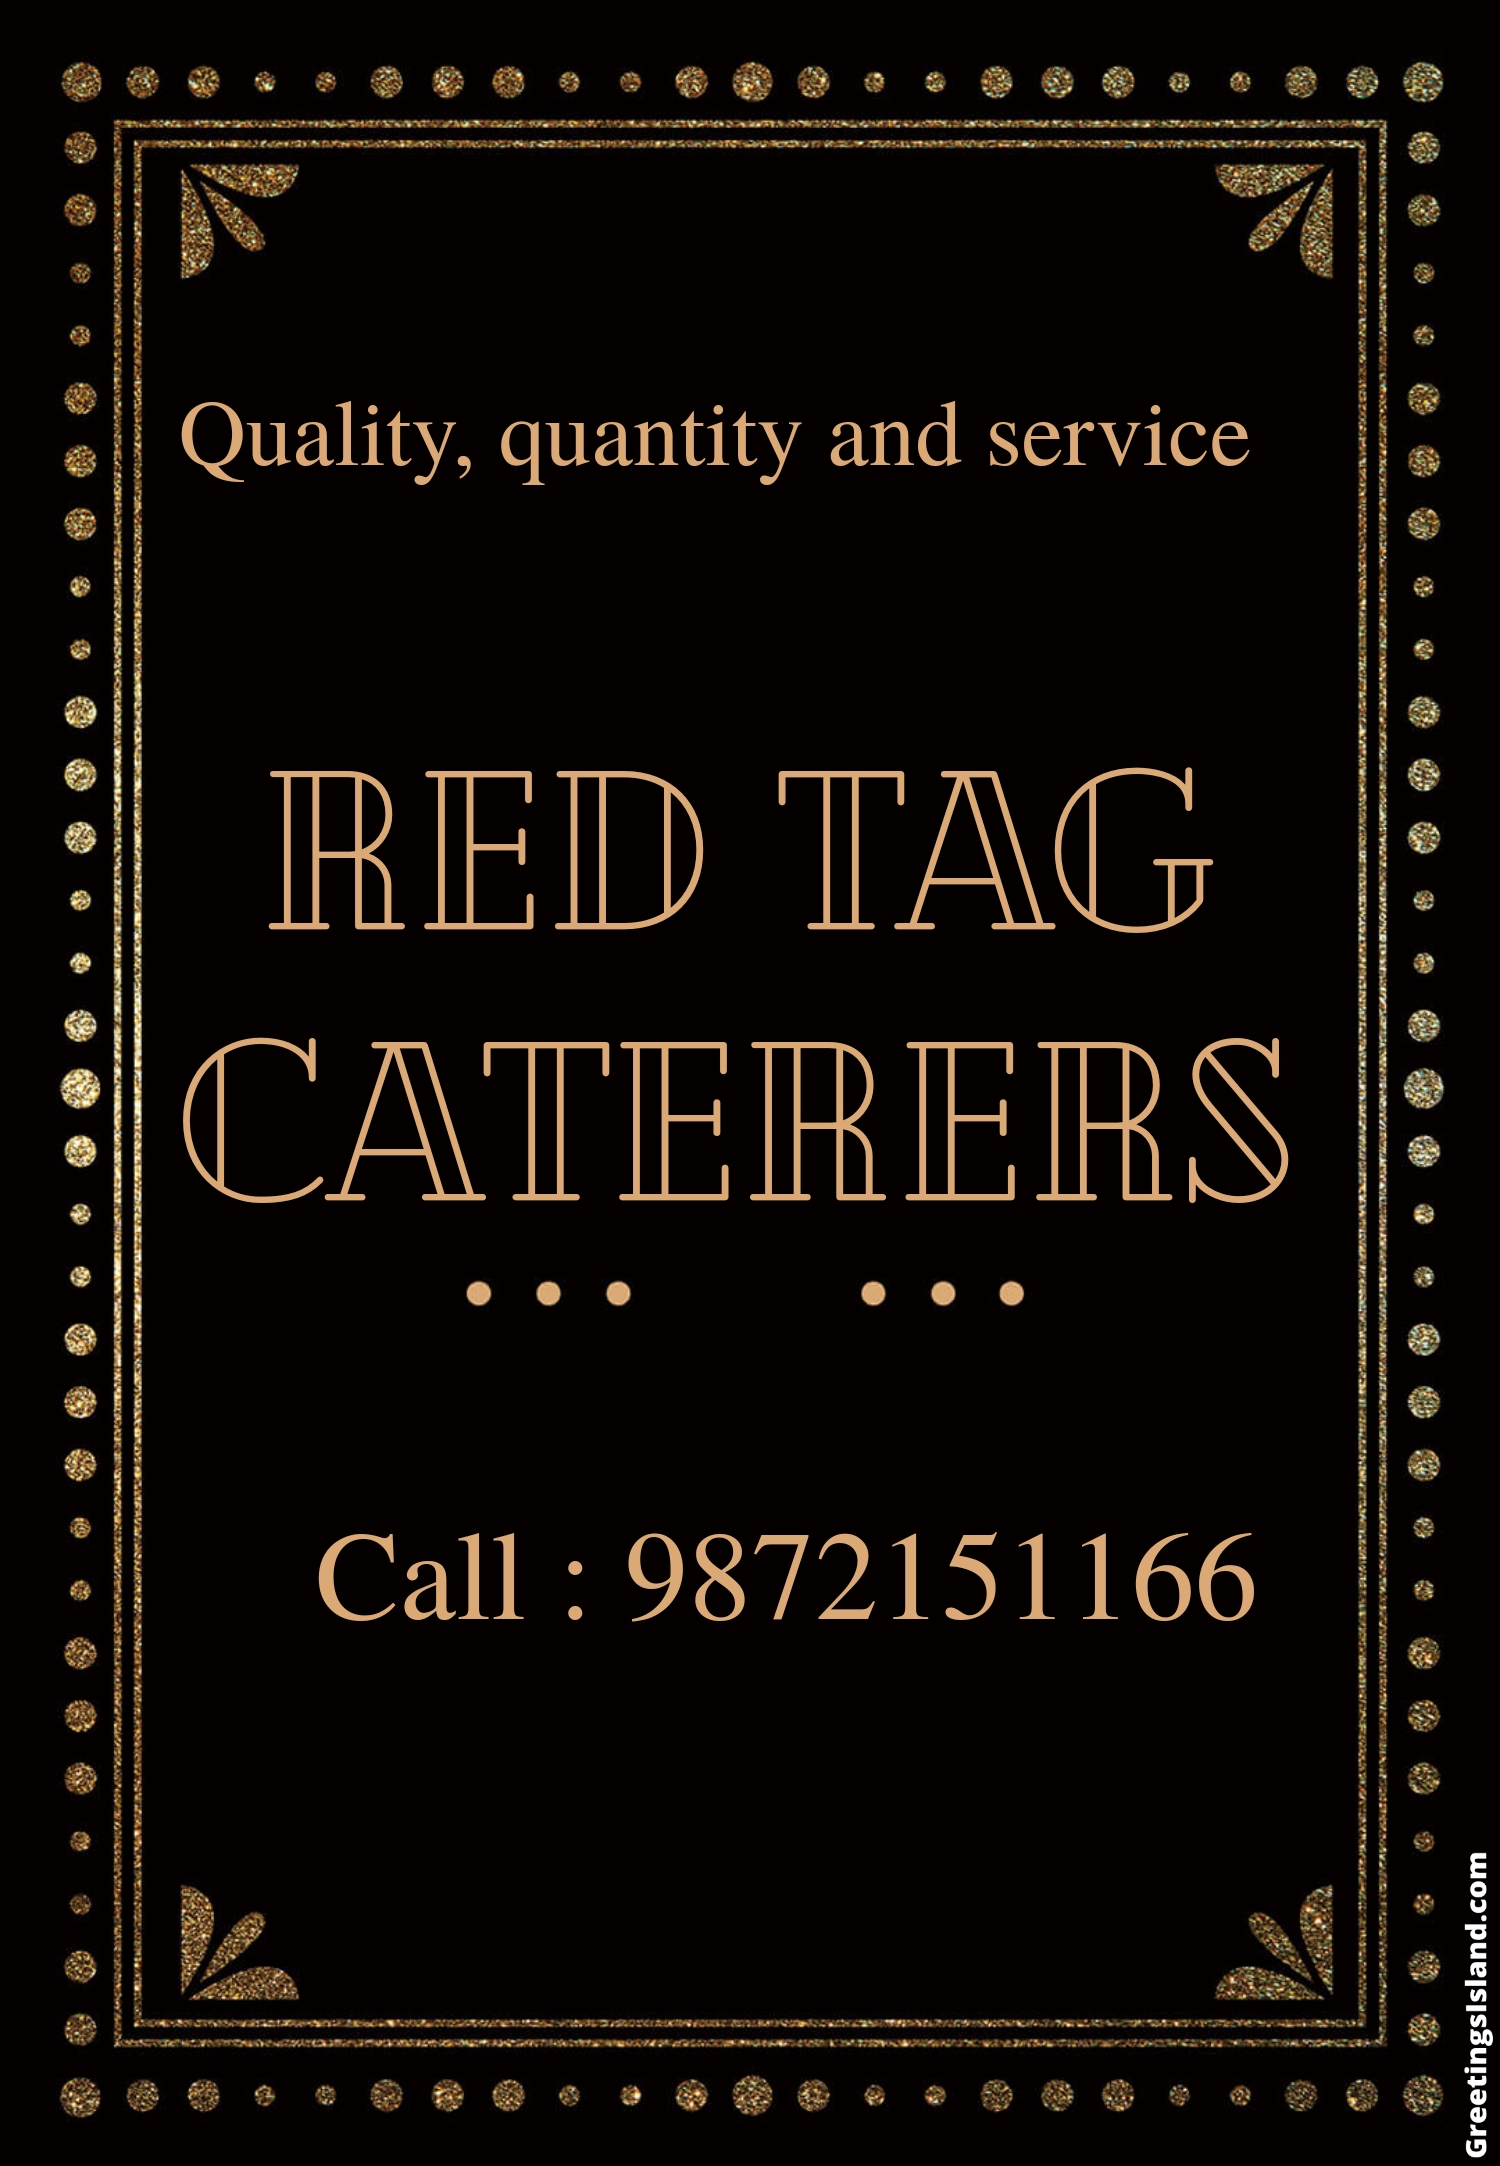 Red Tag Caterers, Best catering service in Chandigarh, top caterer in Chandigarh, hi-class cater in Chandigarh, affordable catering service in Chandigarh,